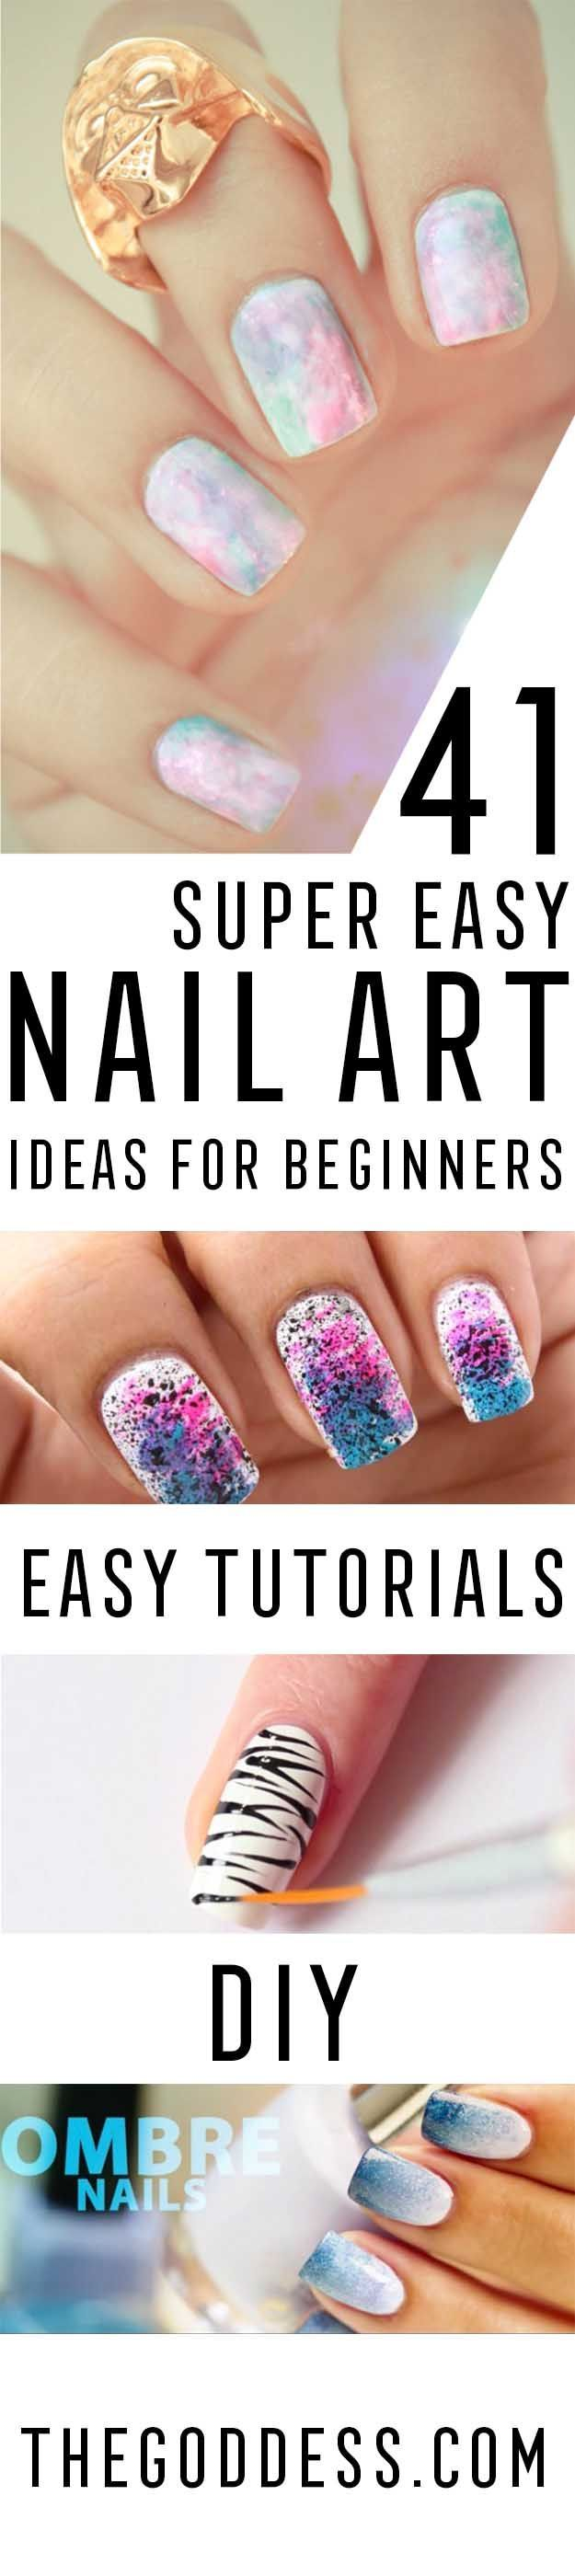 Super Easy Nail Art Ideas for Beginners - Simple Step By Step DIY Tutorials And ...